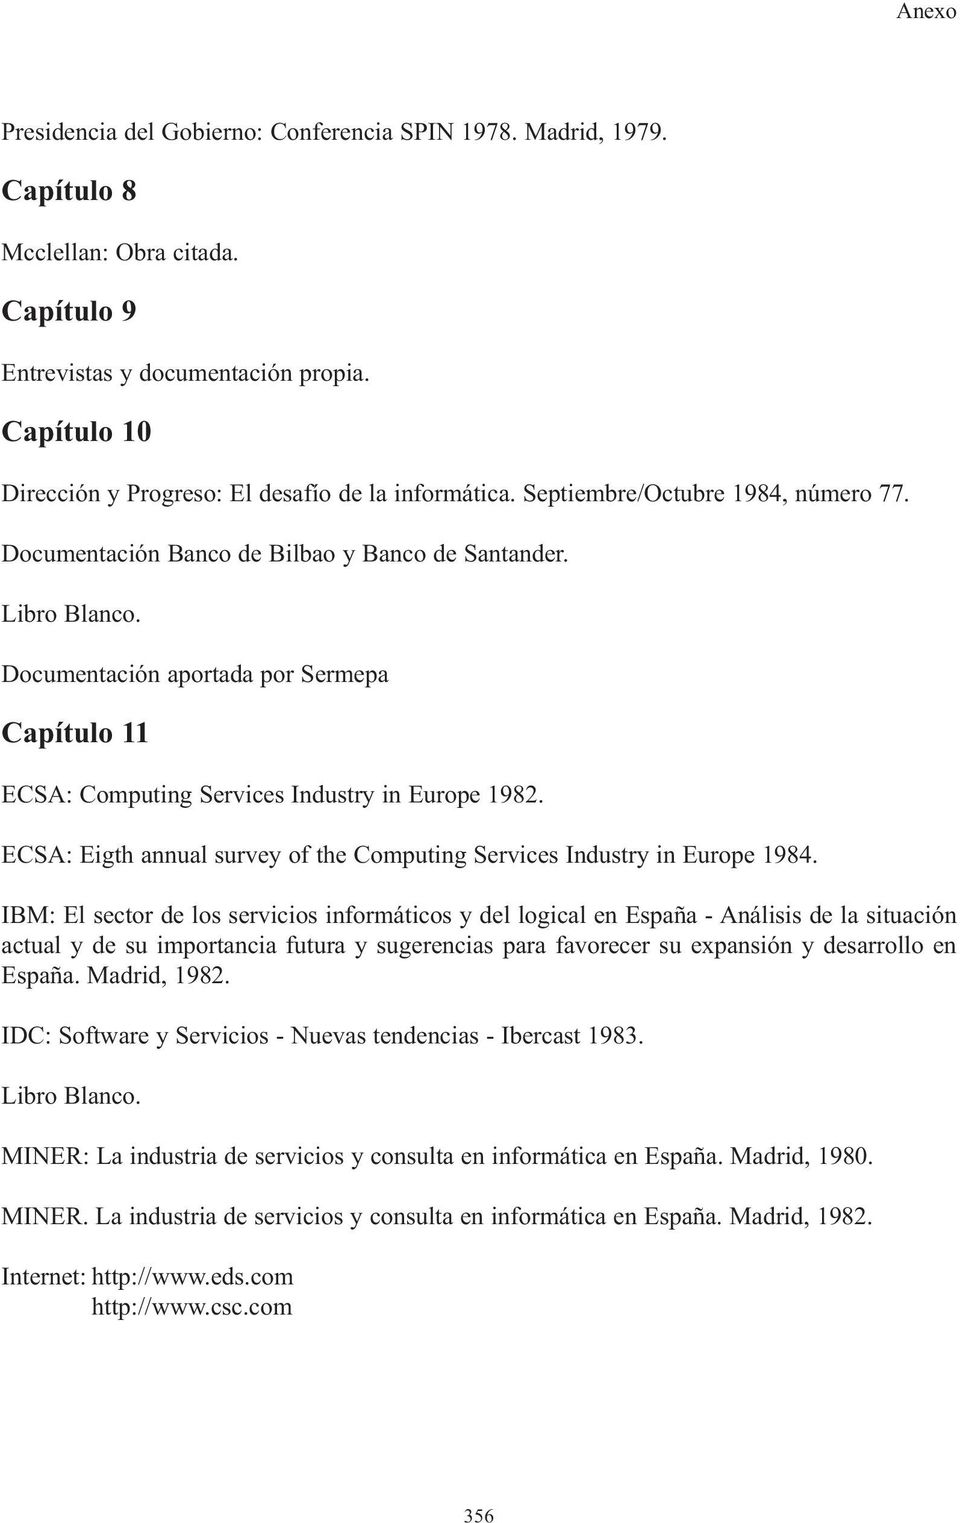 Documentación aportada por Sermepa Capítulo 11 ECSA: Computing Services Industry in Europe 1982. ECSA: Eigth annual survey of the Computing Services Industry in Europe 1984.